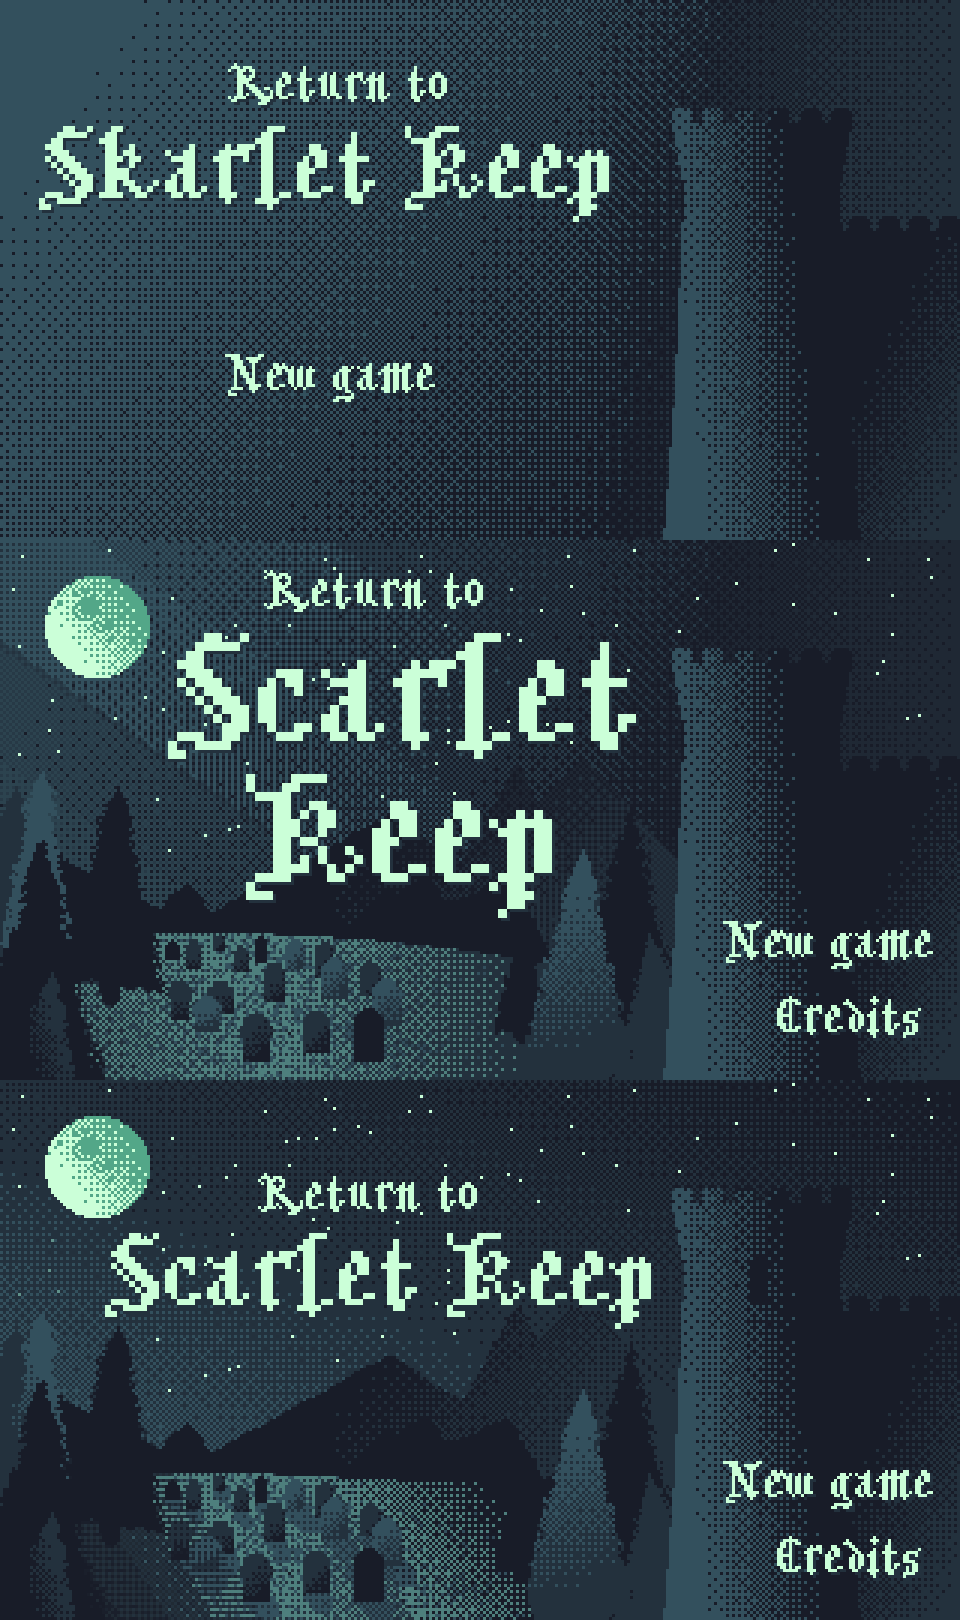 Return to Scarlet Keep Title screen concept